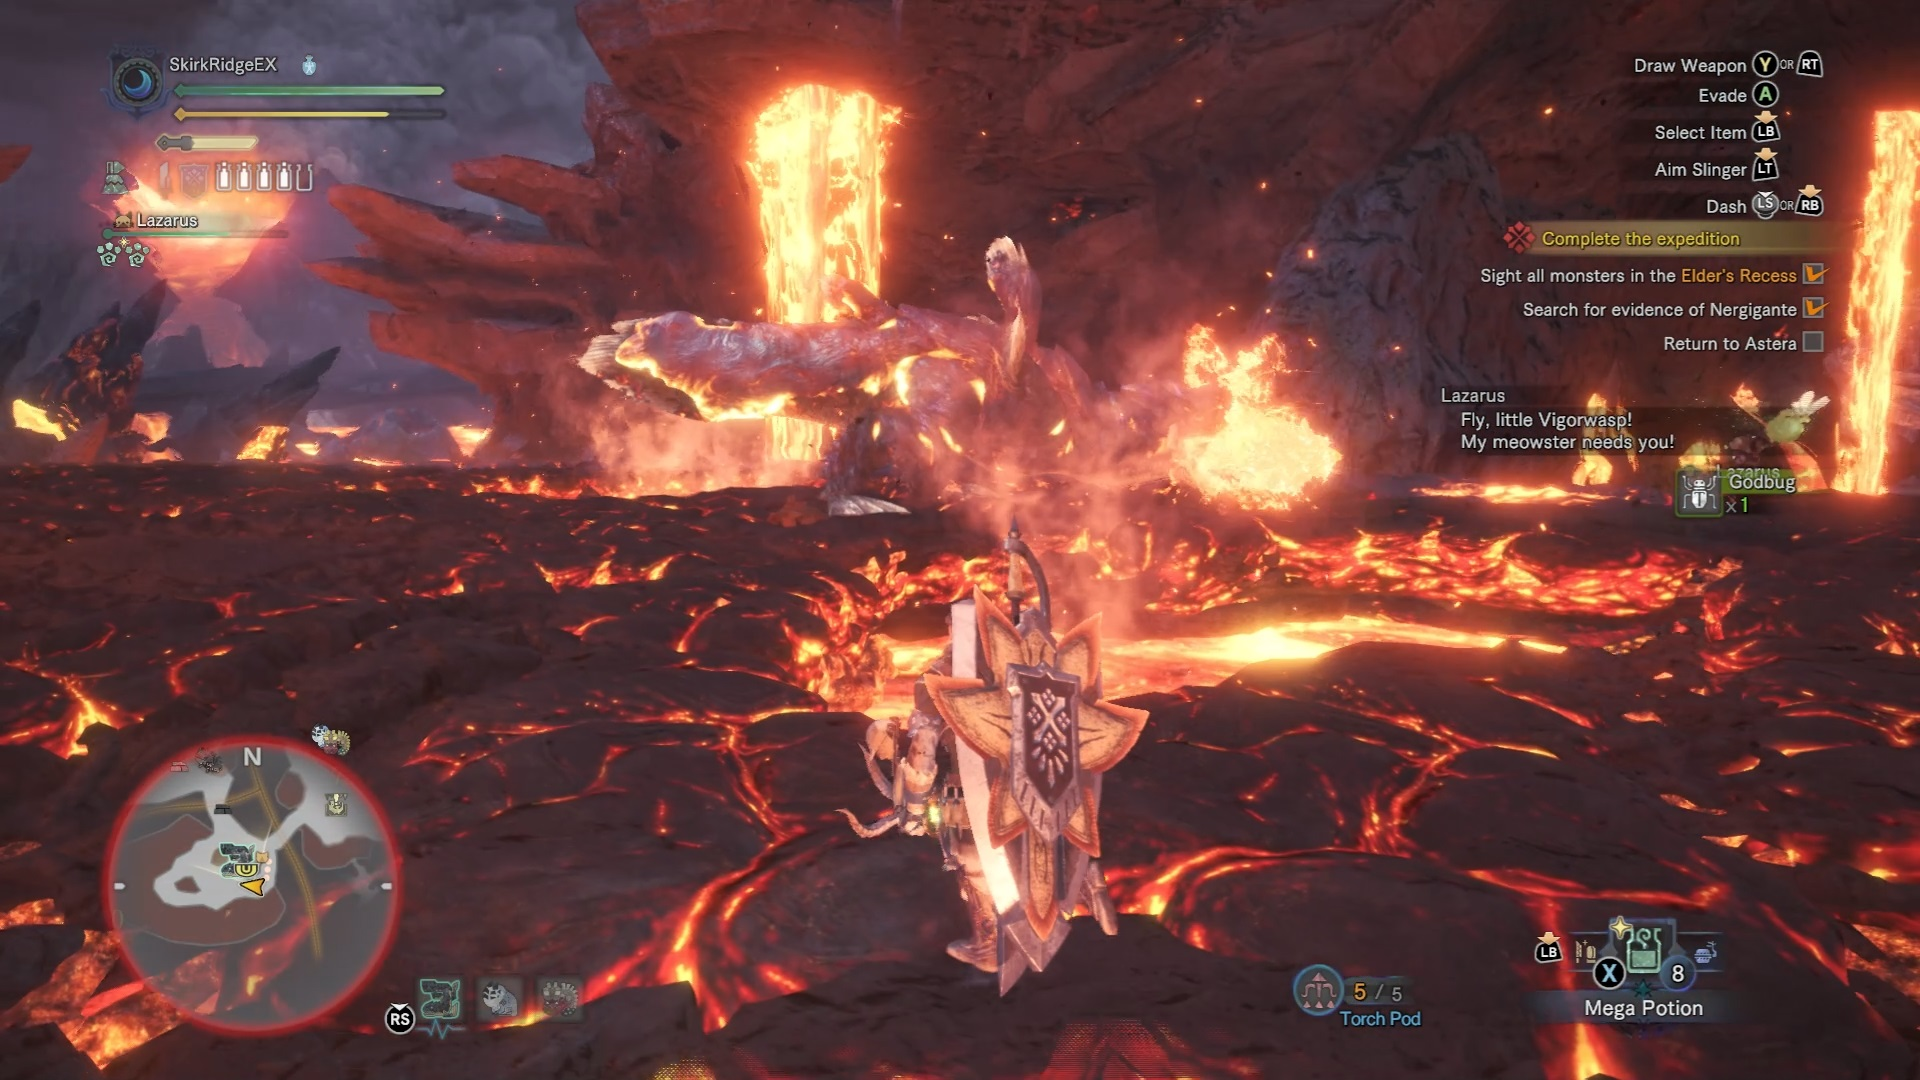 Lavasioth spitting a ball of magma at the hunter's Palico.